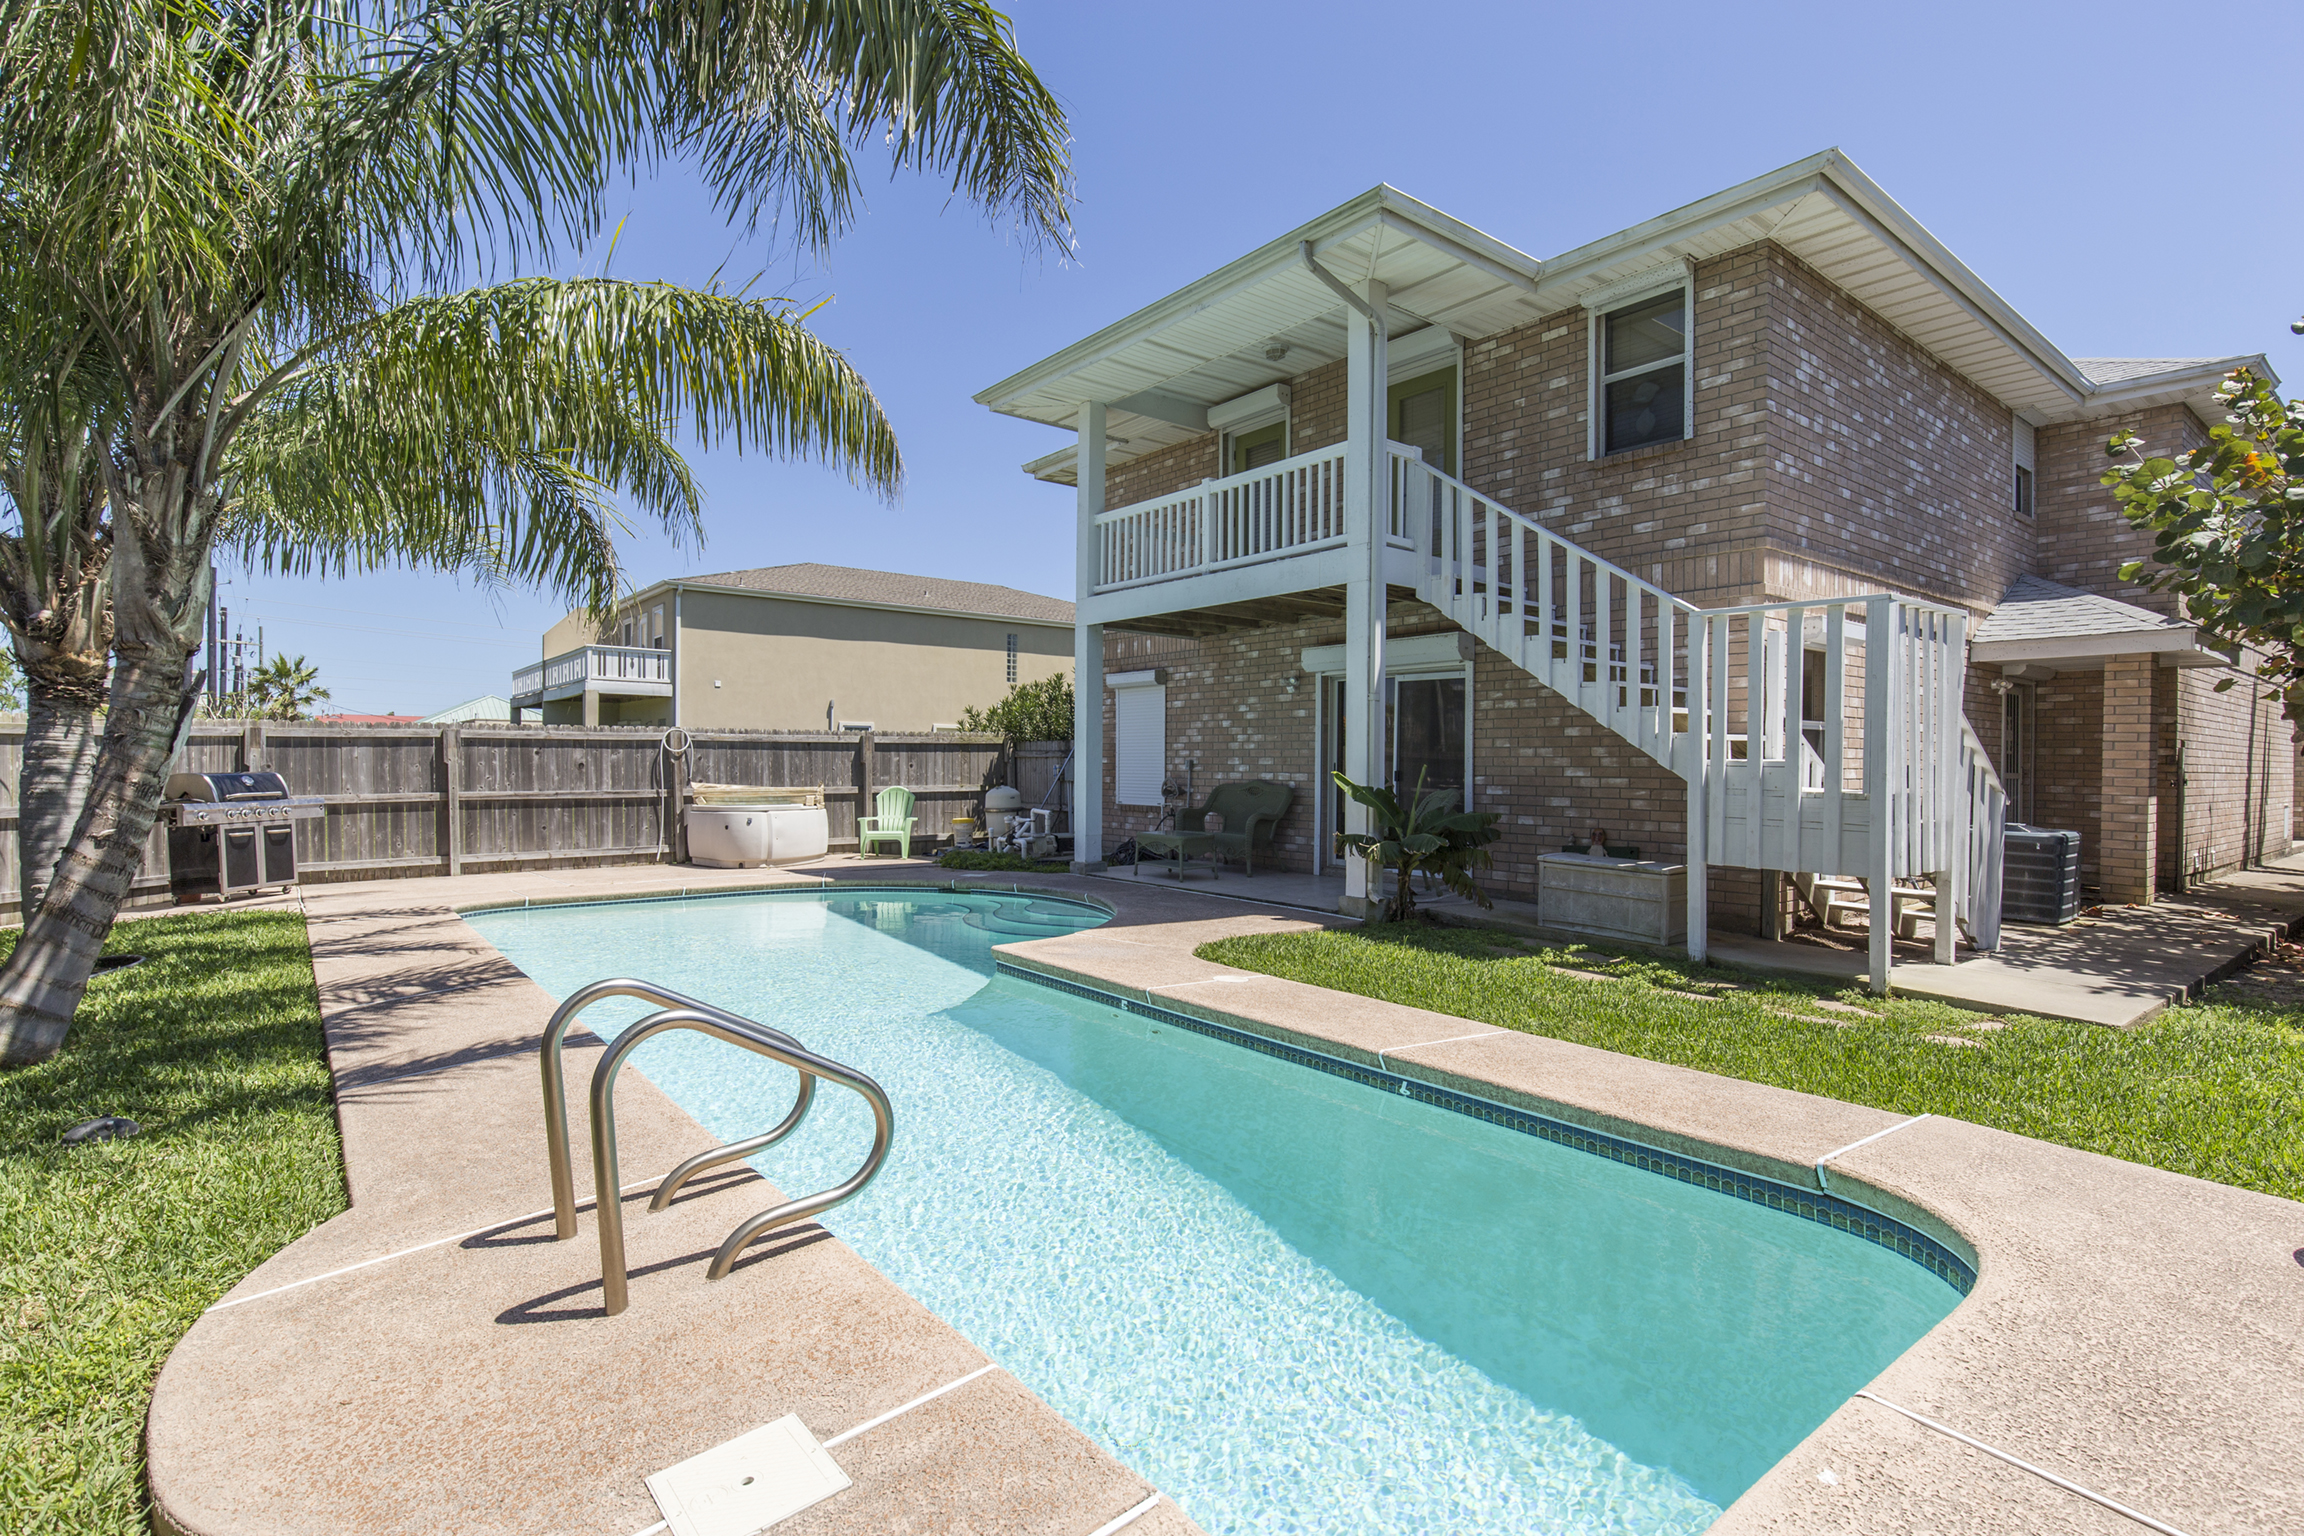 South Padre Island house for rent on vacation with pool and hot tub close to beach and bay